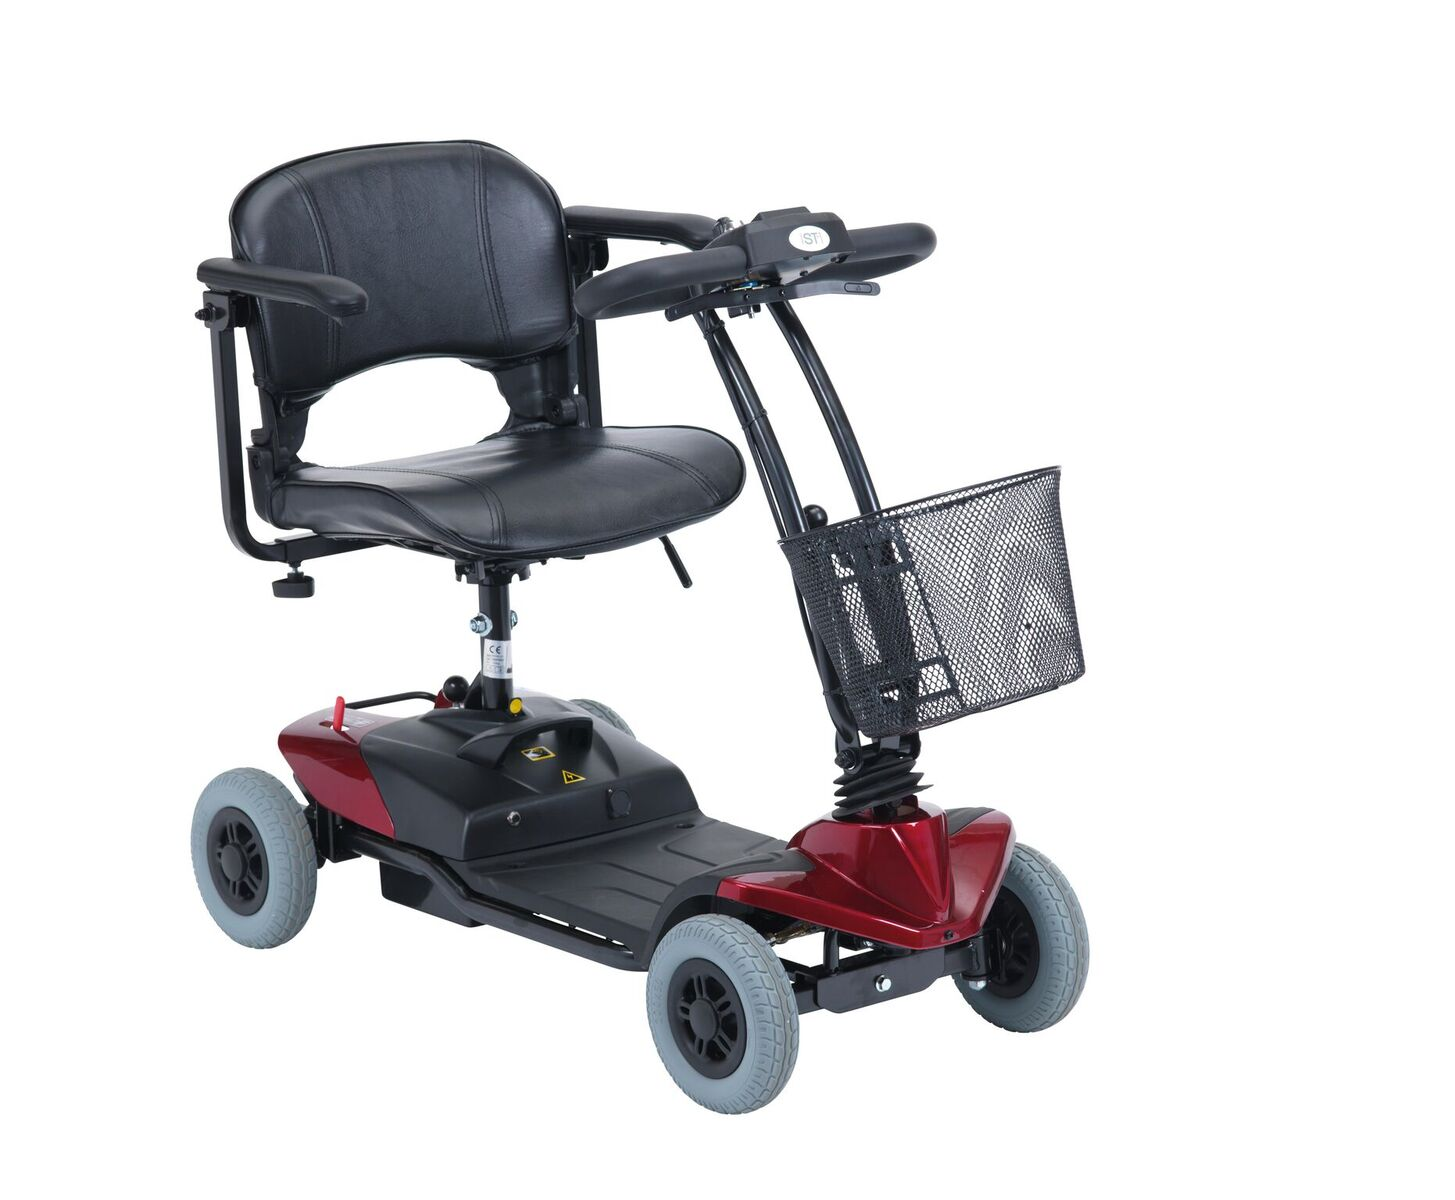 ST1 Boot Scooter - In Stock Menai Bridge